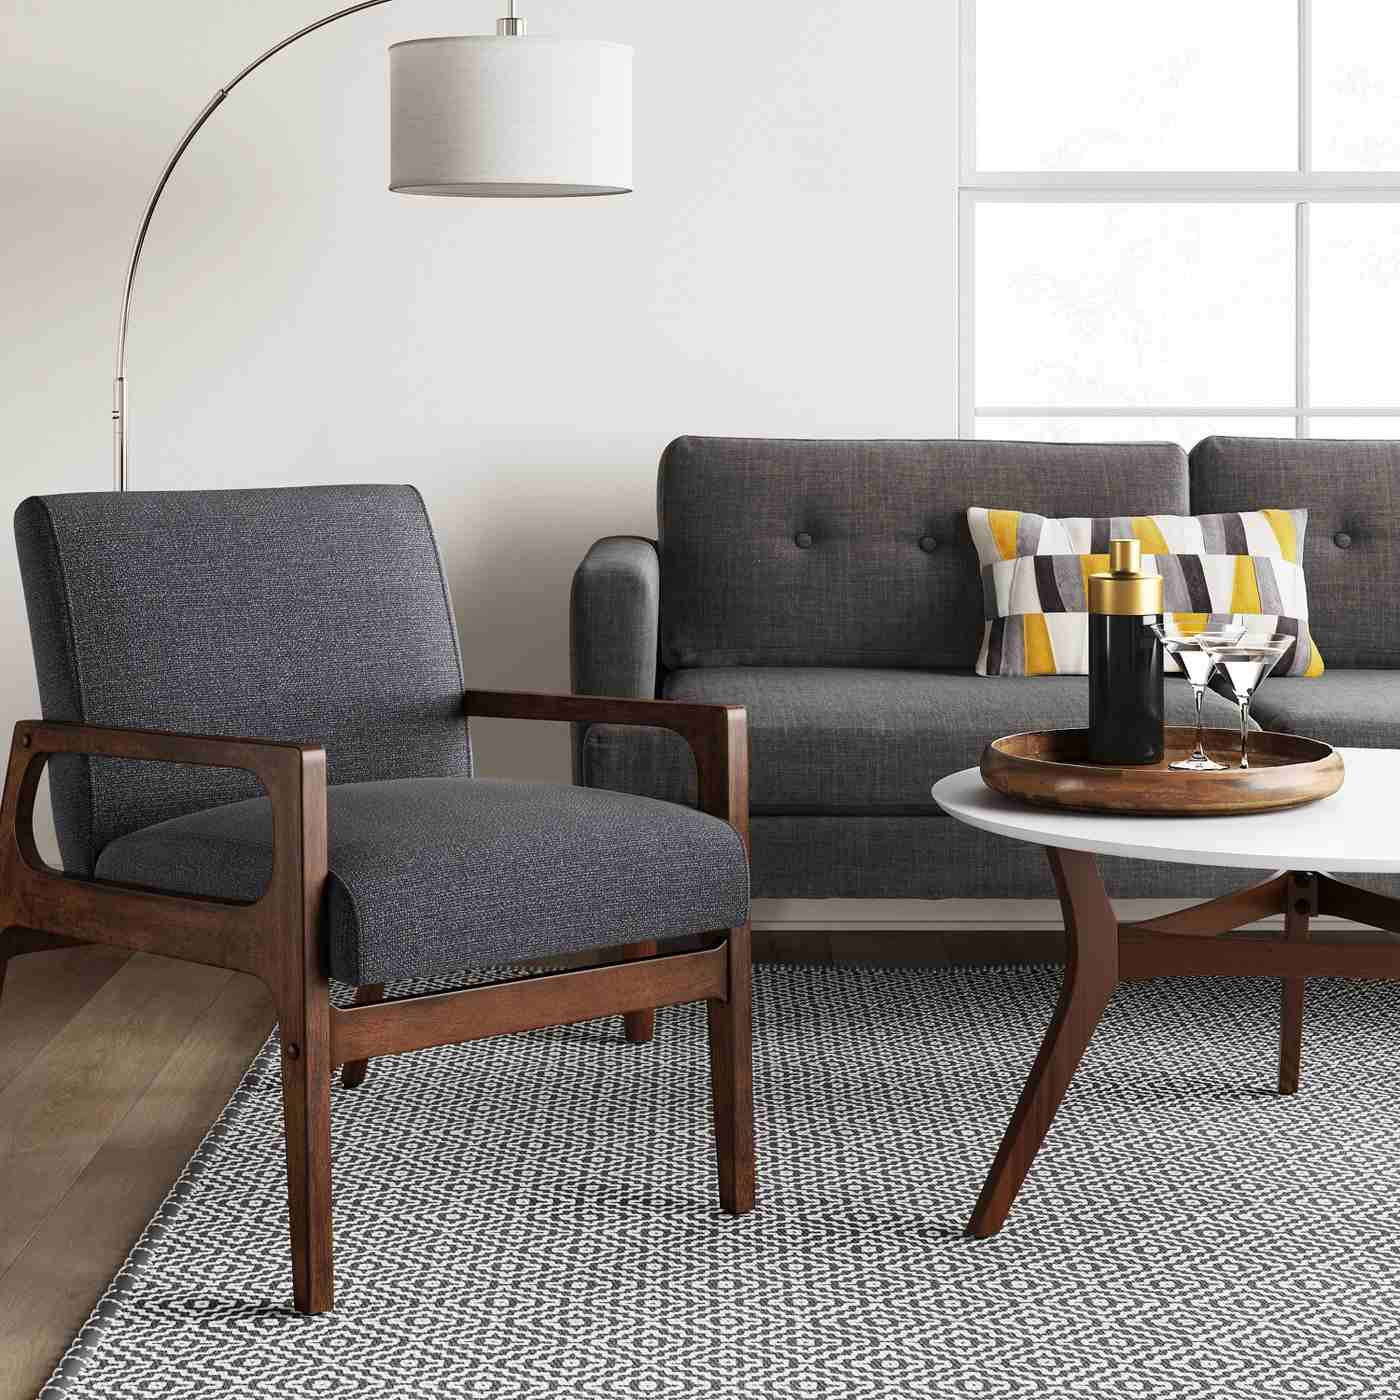 Places To Buy Furniture The Best Places To Buy Furniture In 2019